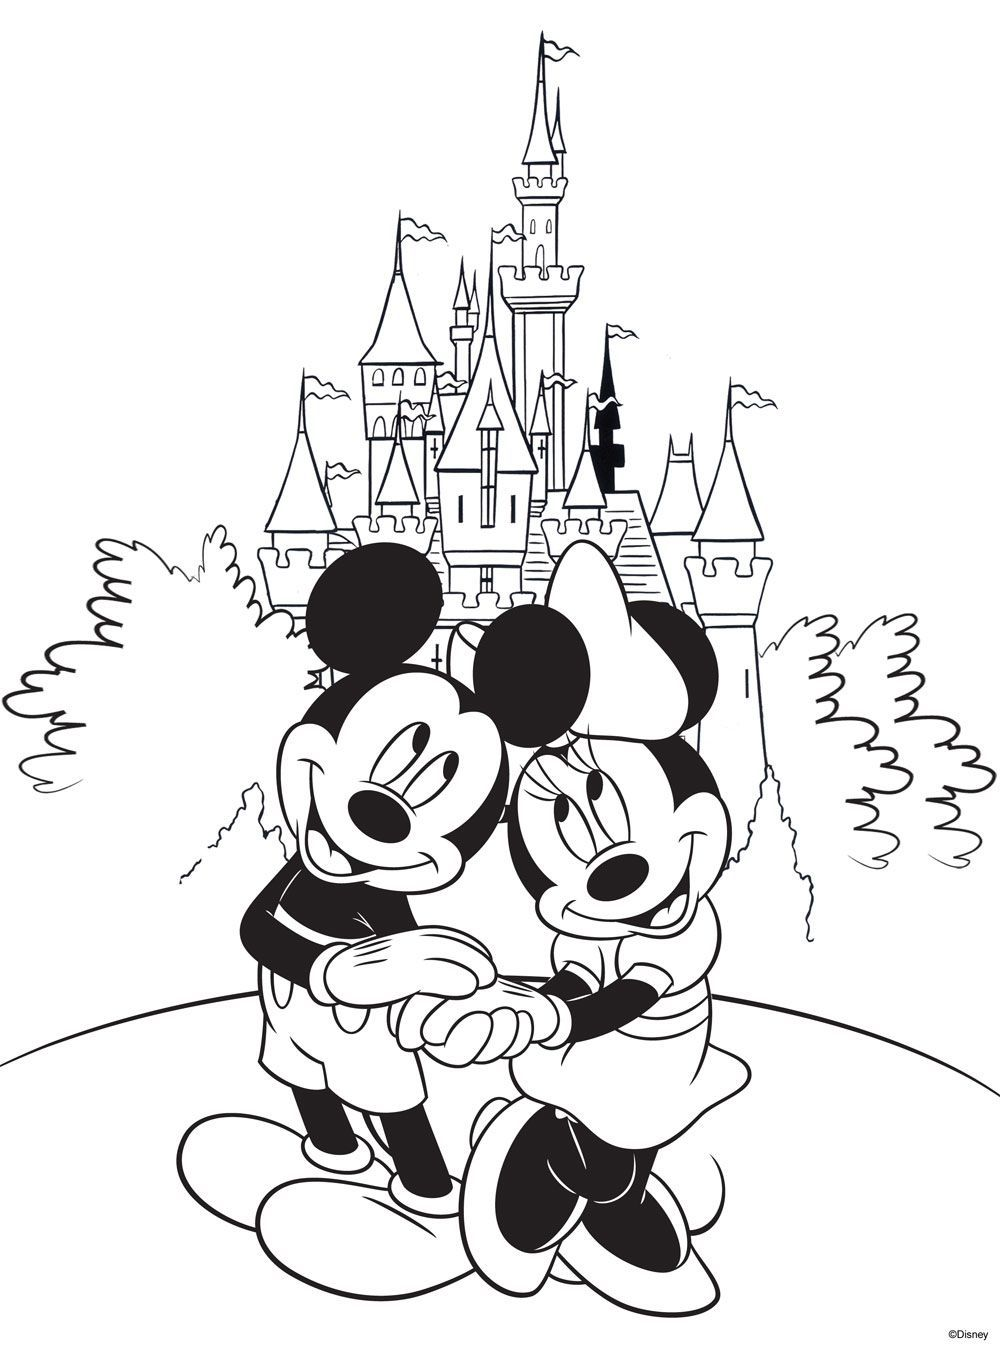 Free Disney Coloring Pages In 2020 Disney Coloring Pages Disney Coloring Sheets Free Disney Coloring Pages